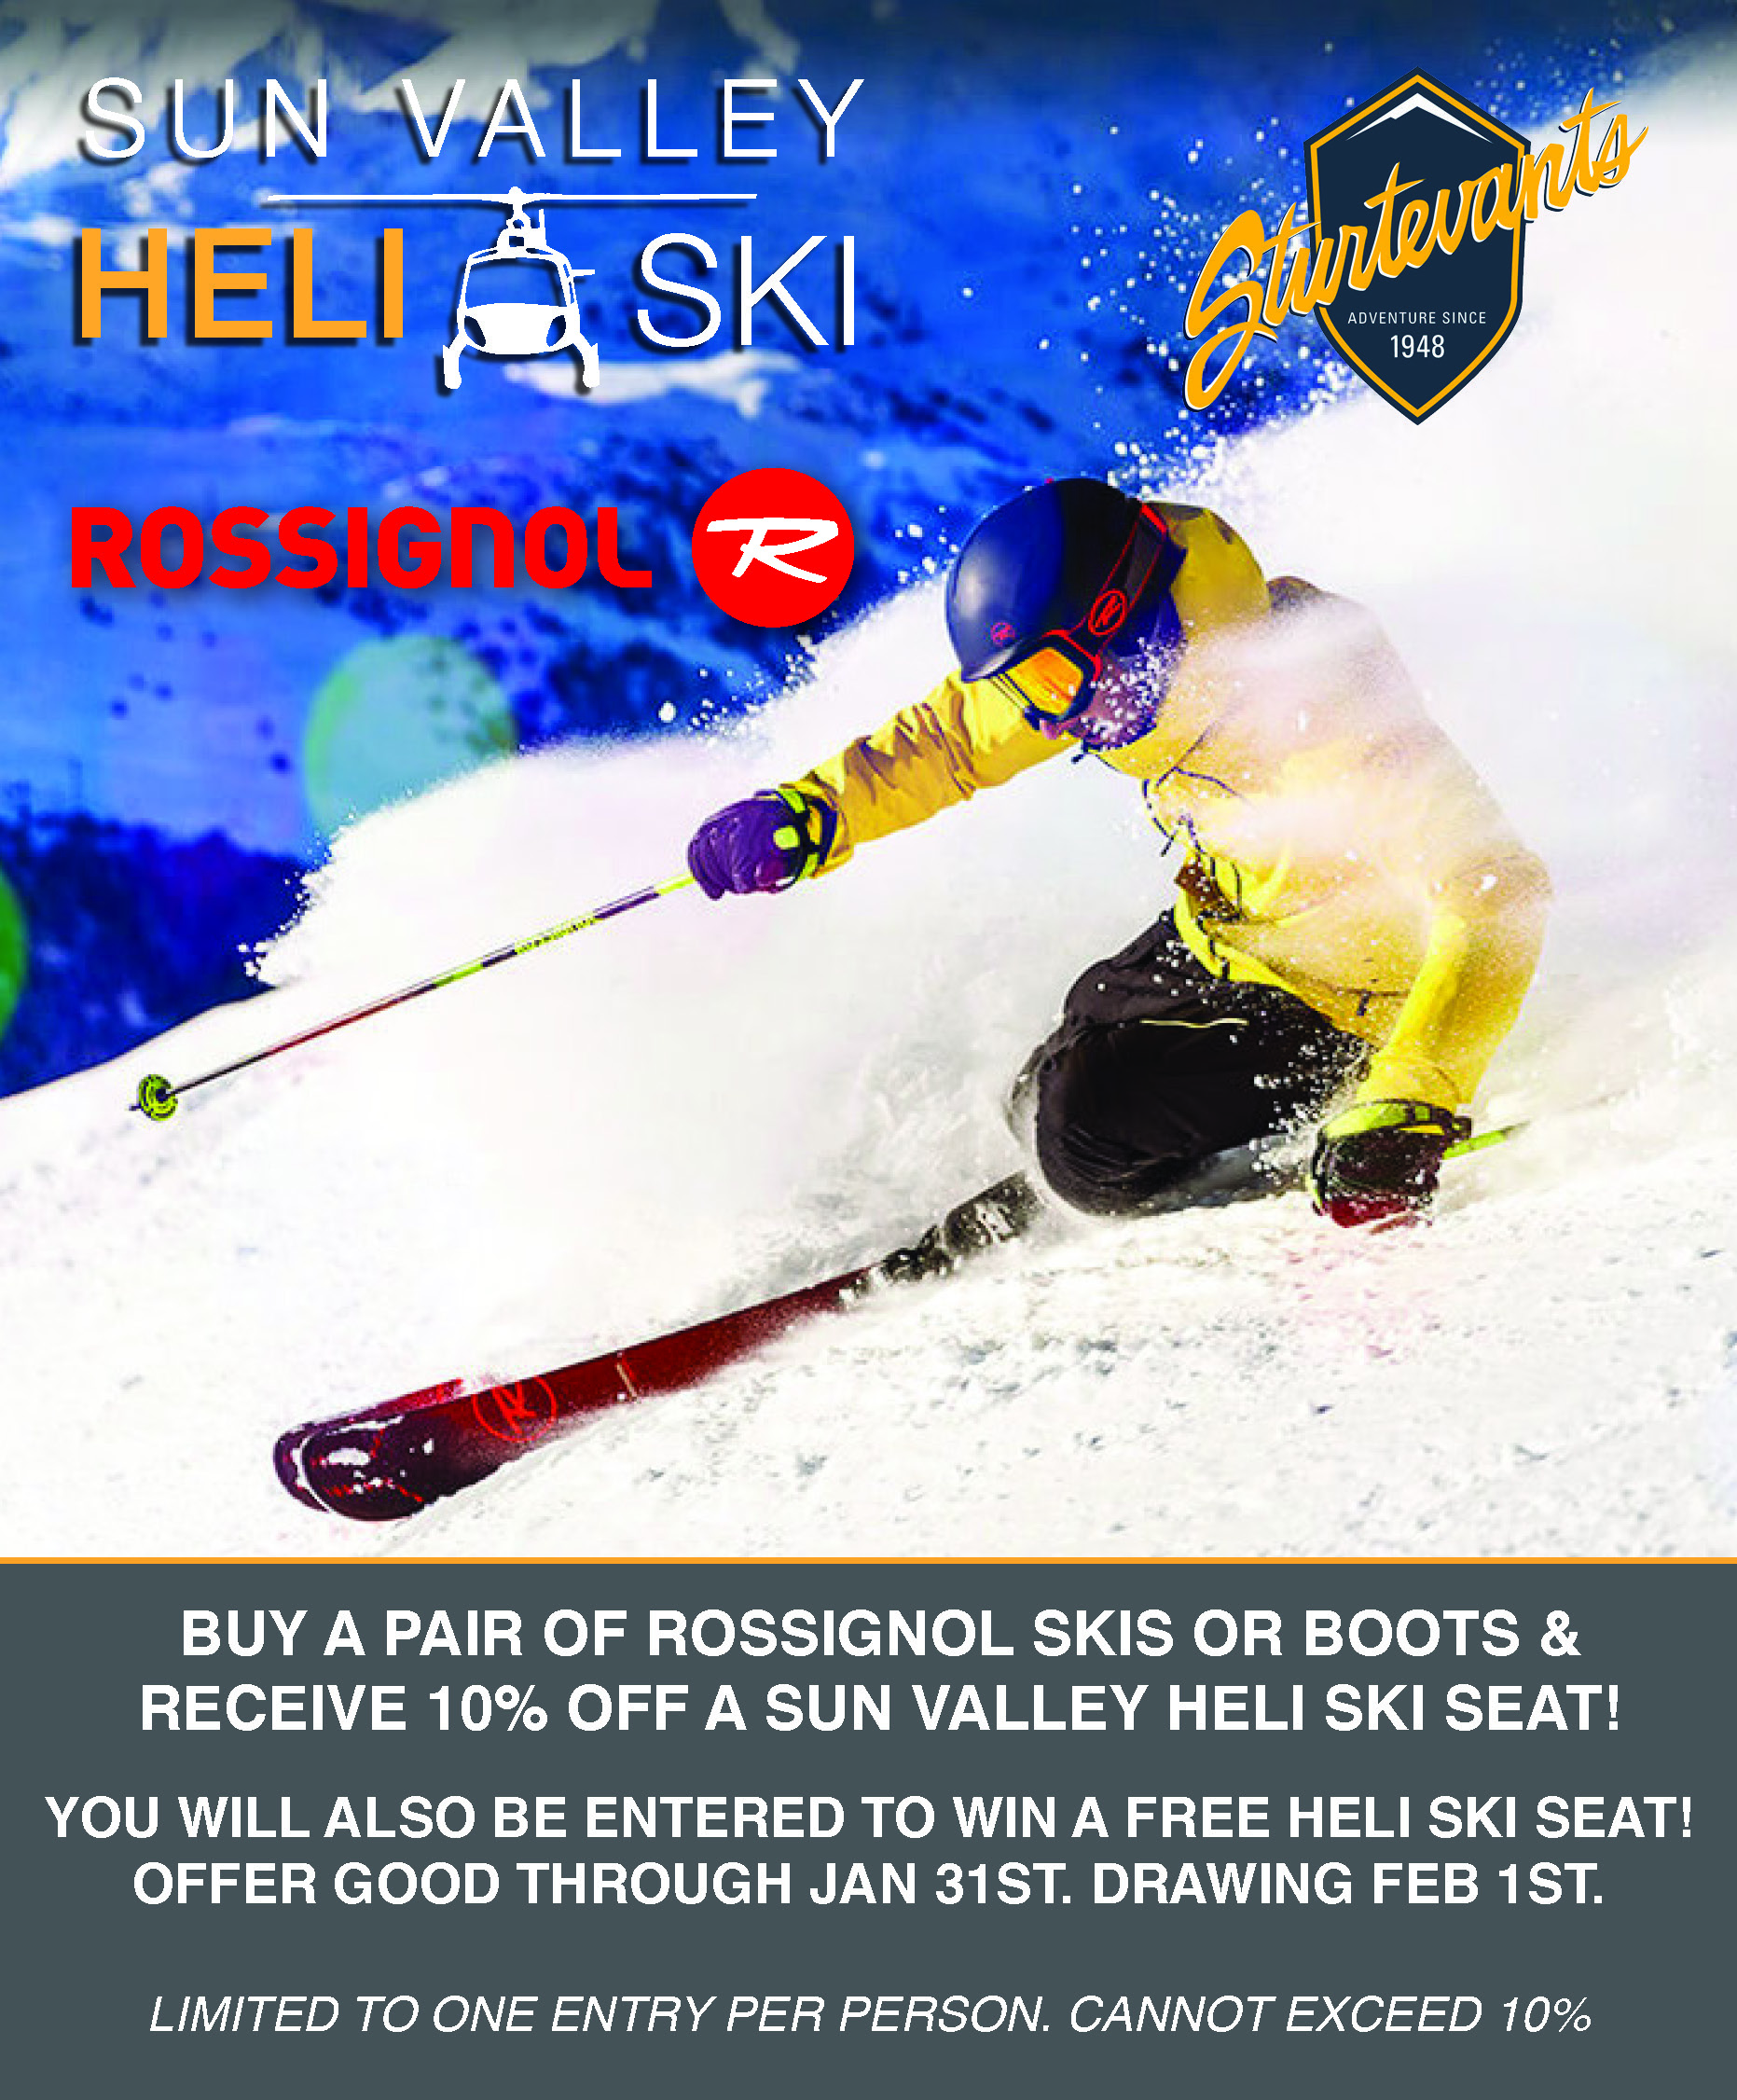 rossignol-offer.jpg